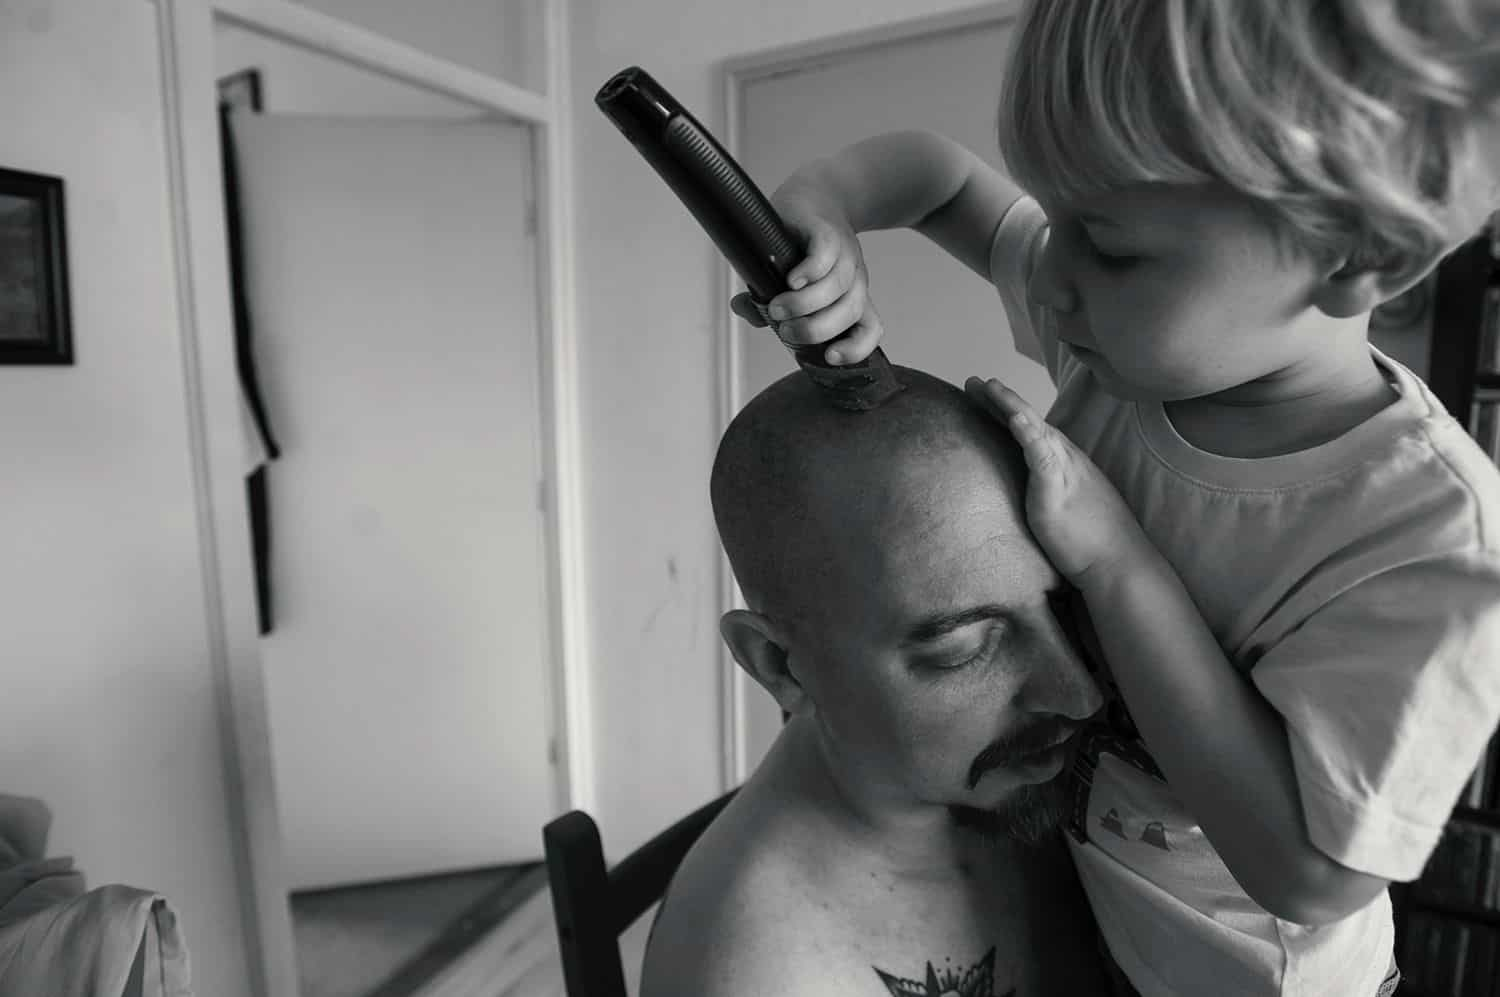 A dad holds his little boy close as the child shaves his father's dead with electric clippers